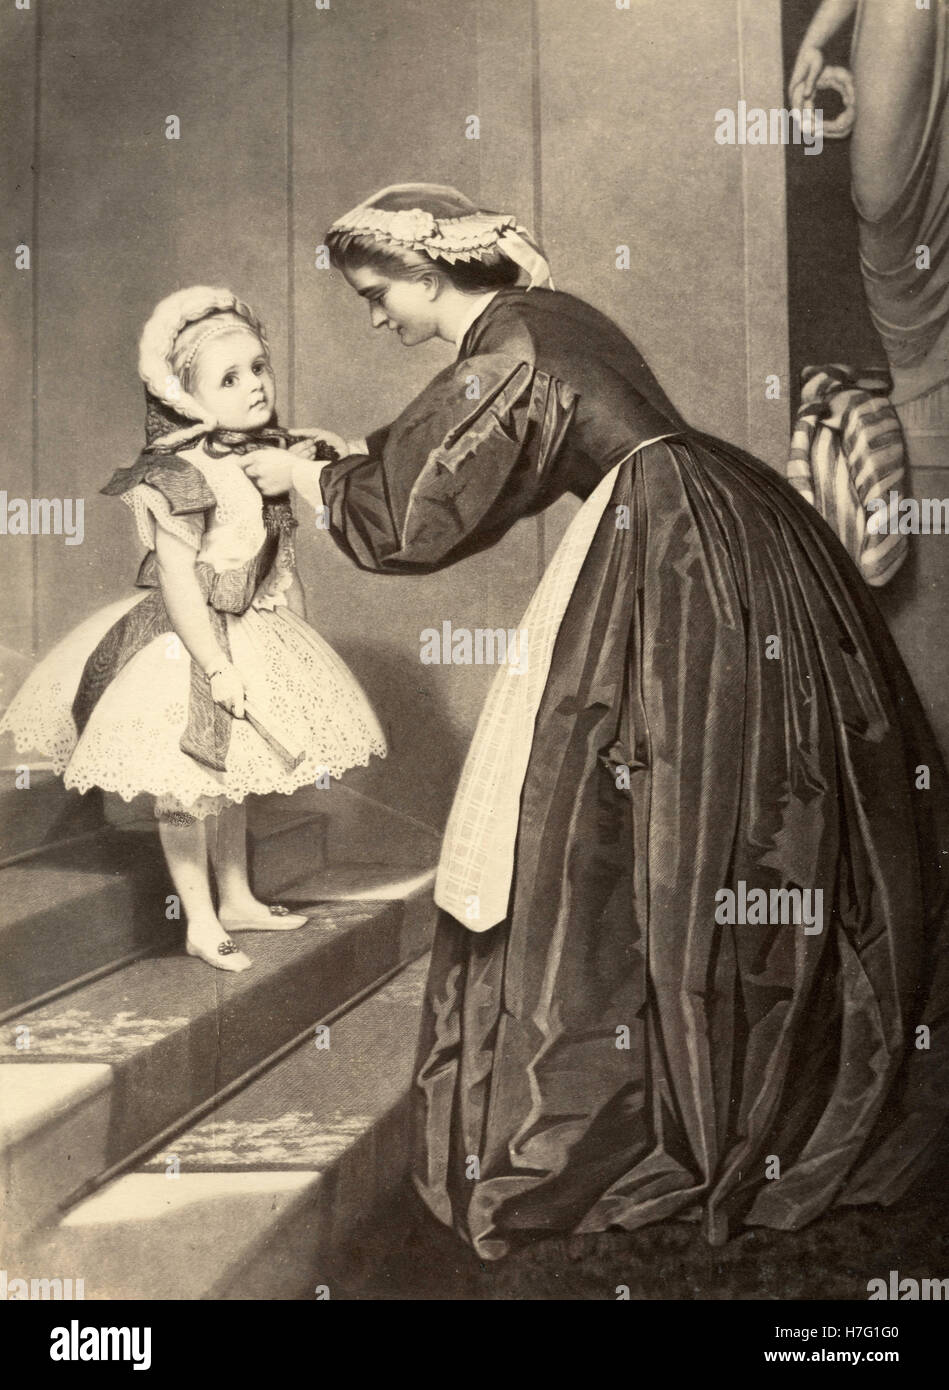 Dressing the little girl, etching - Stock Image